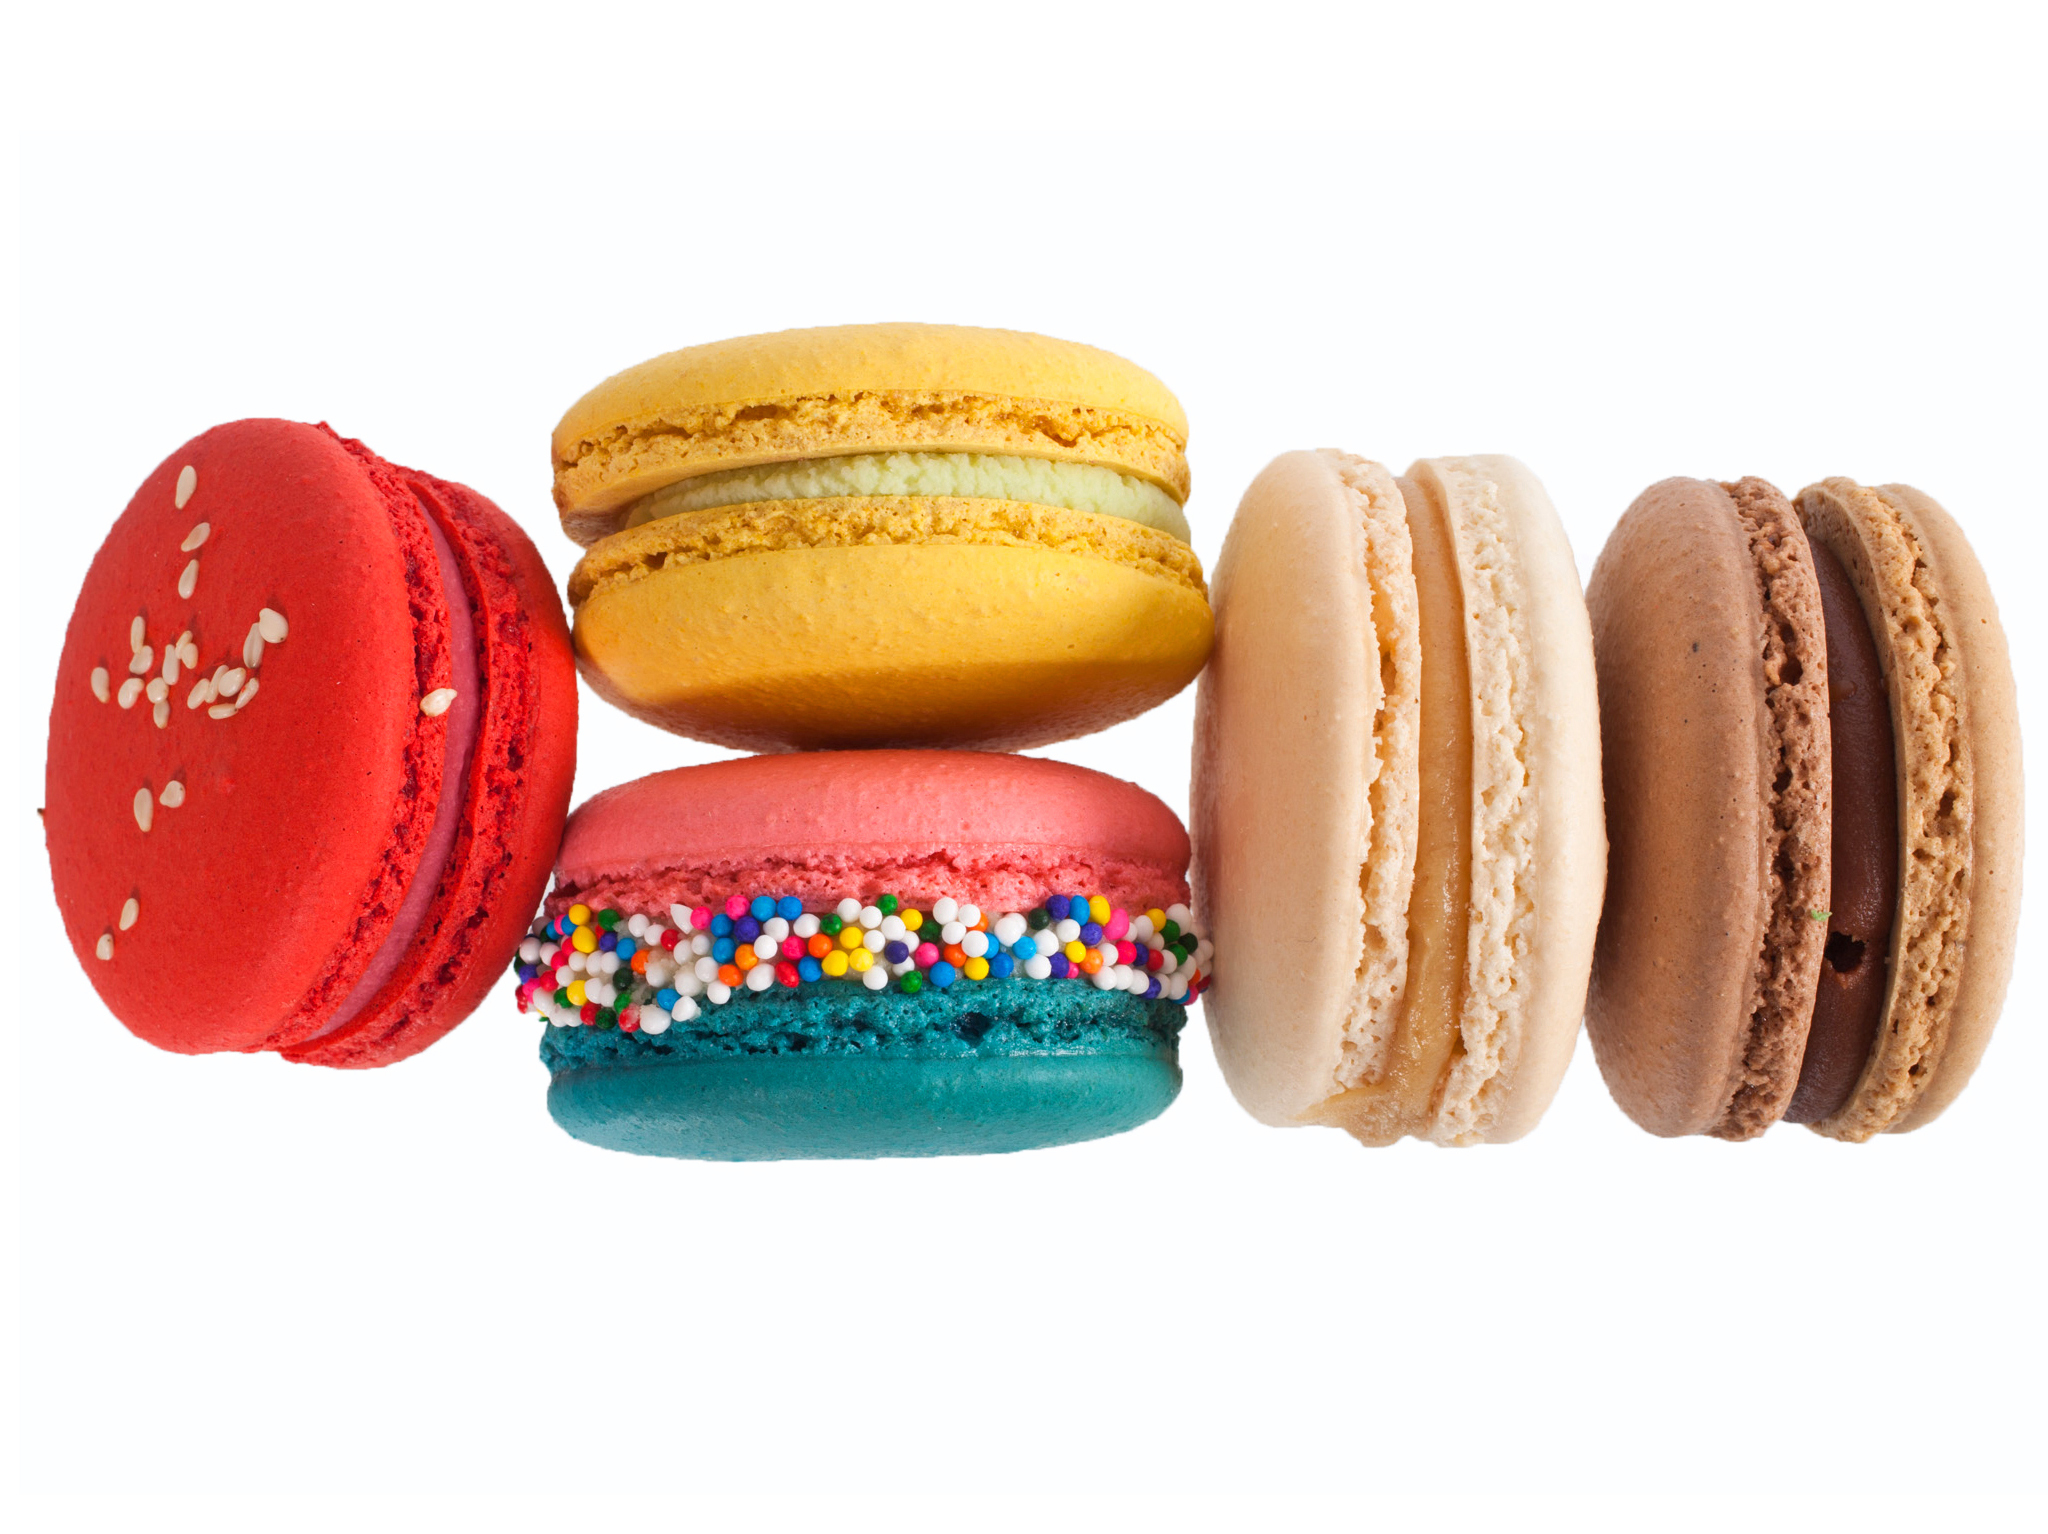 Where To Find The Best French Macarons In Chicago